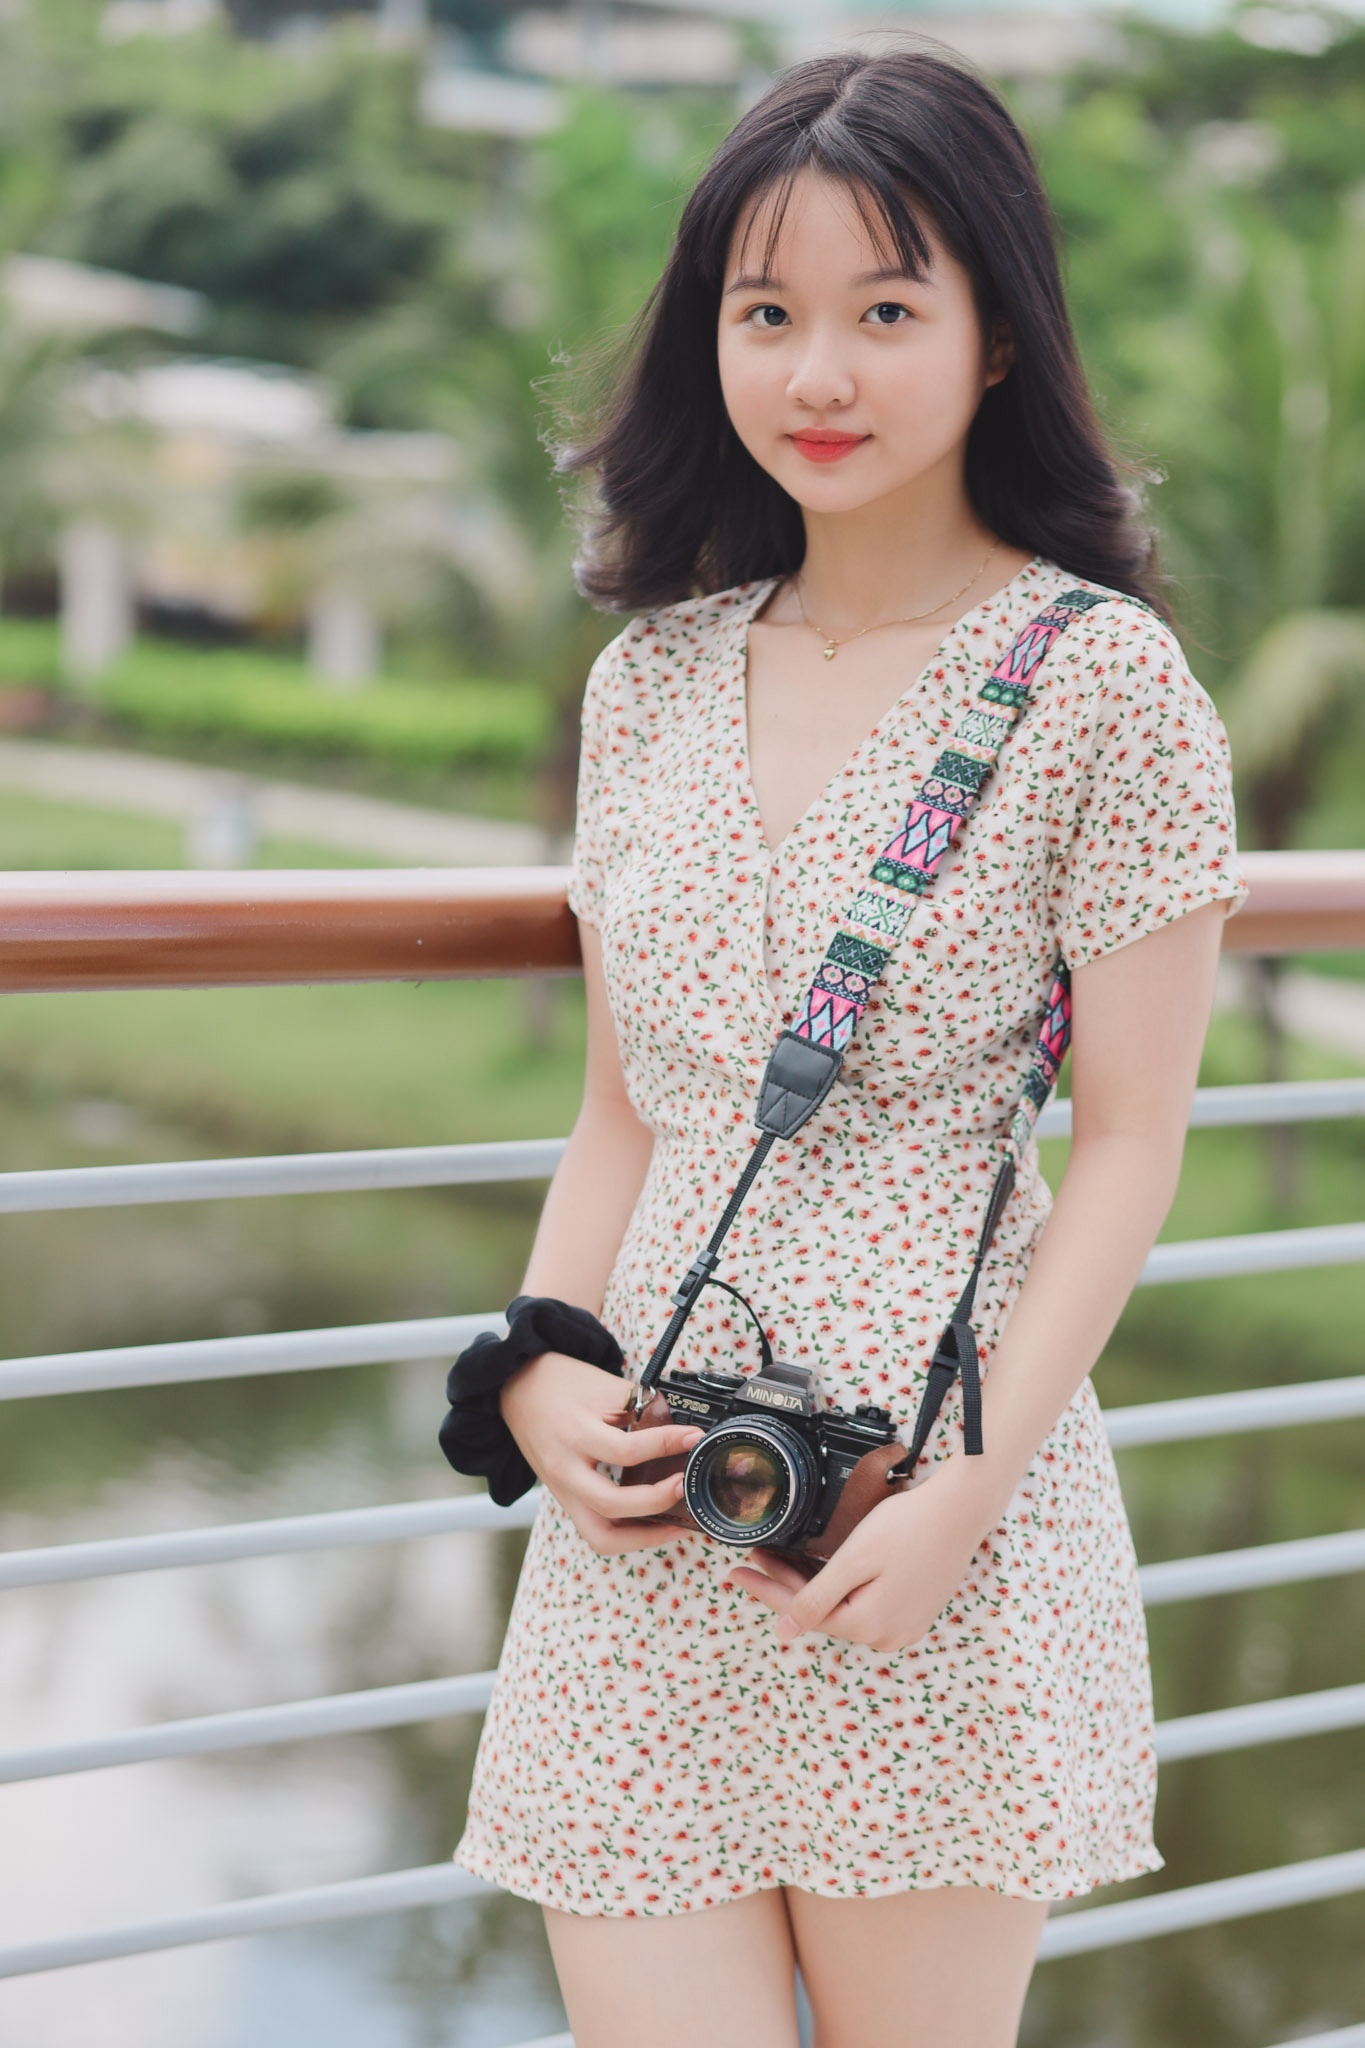 dien vien lam thanh my tuoi 15 anh 2